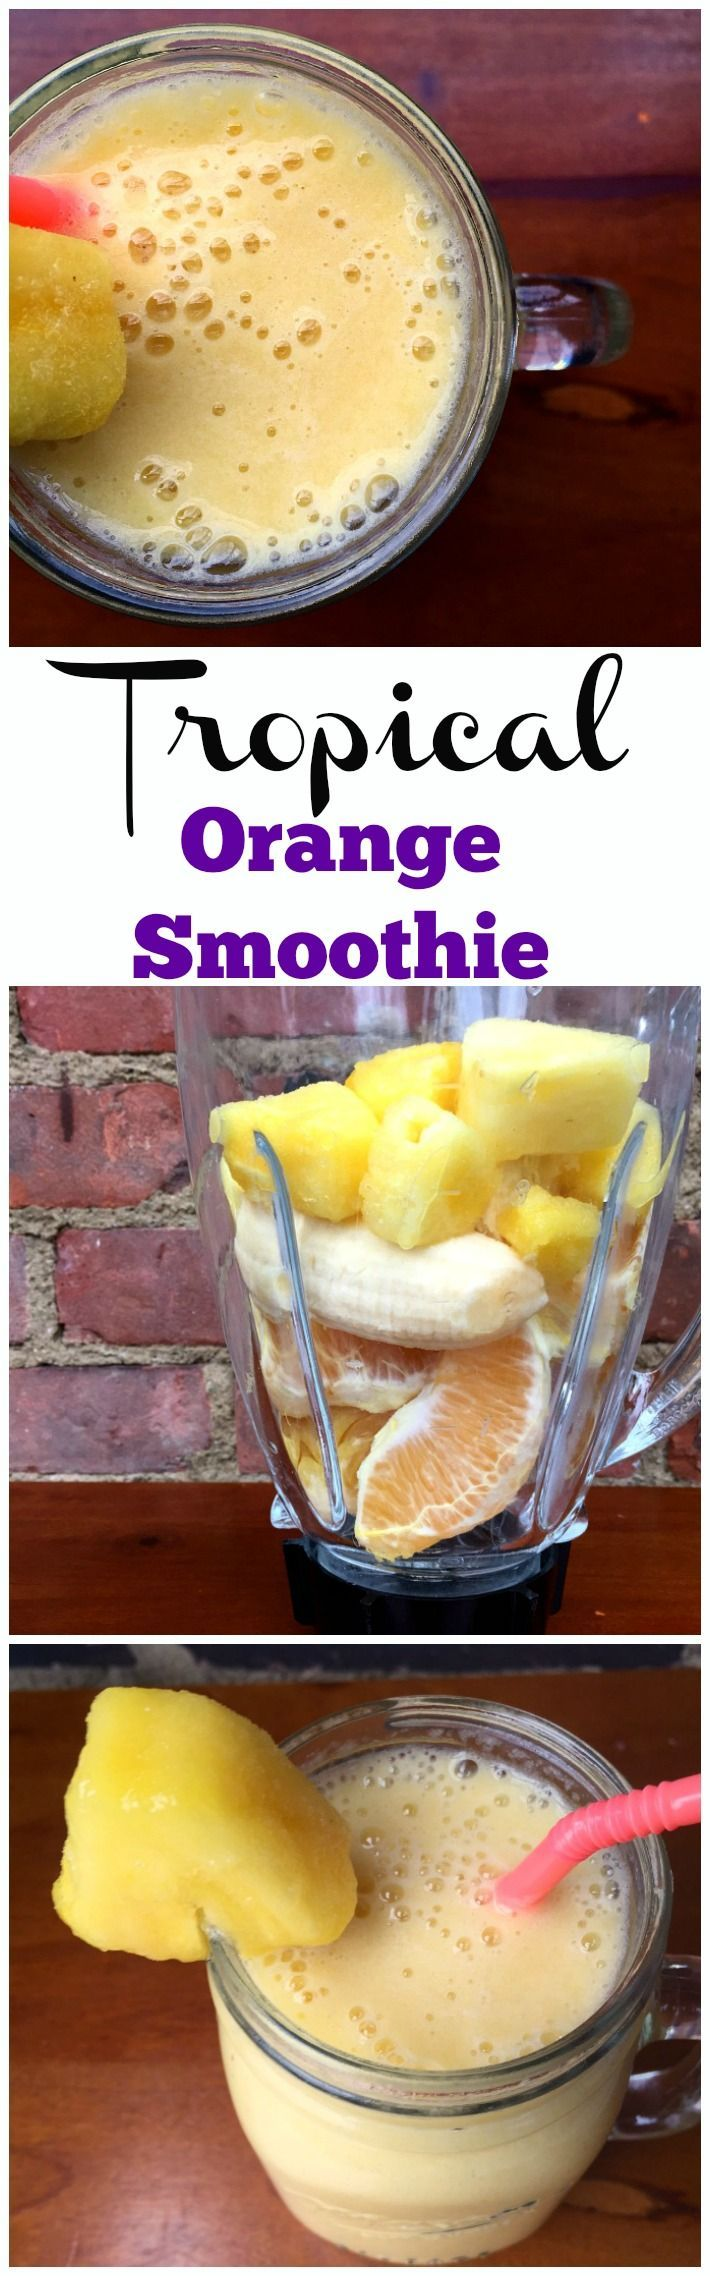 With only four easy ingredients, this smoothie contains a boost of vitamins and…